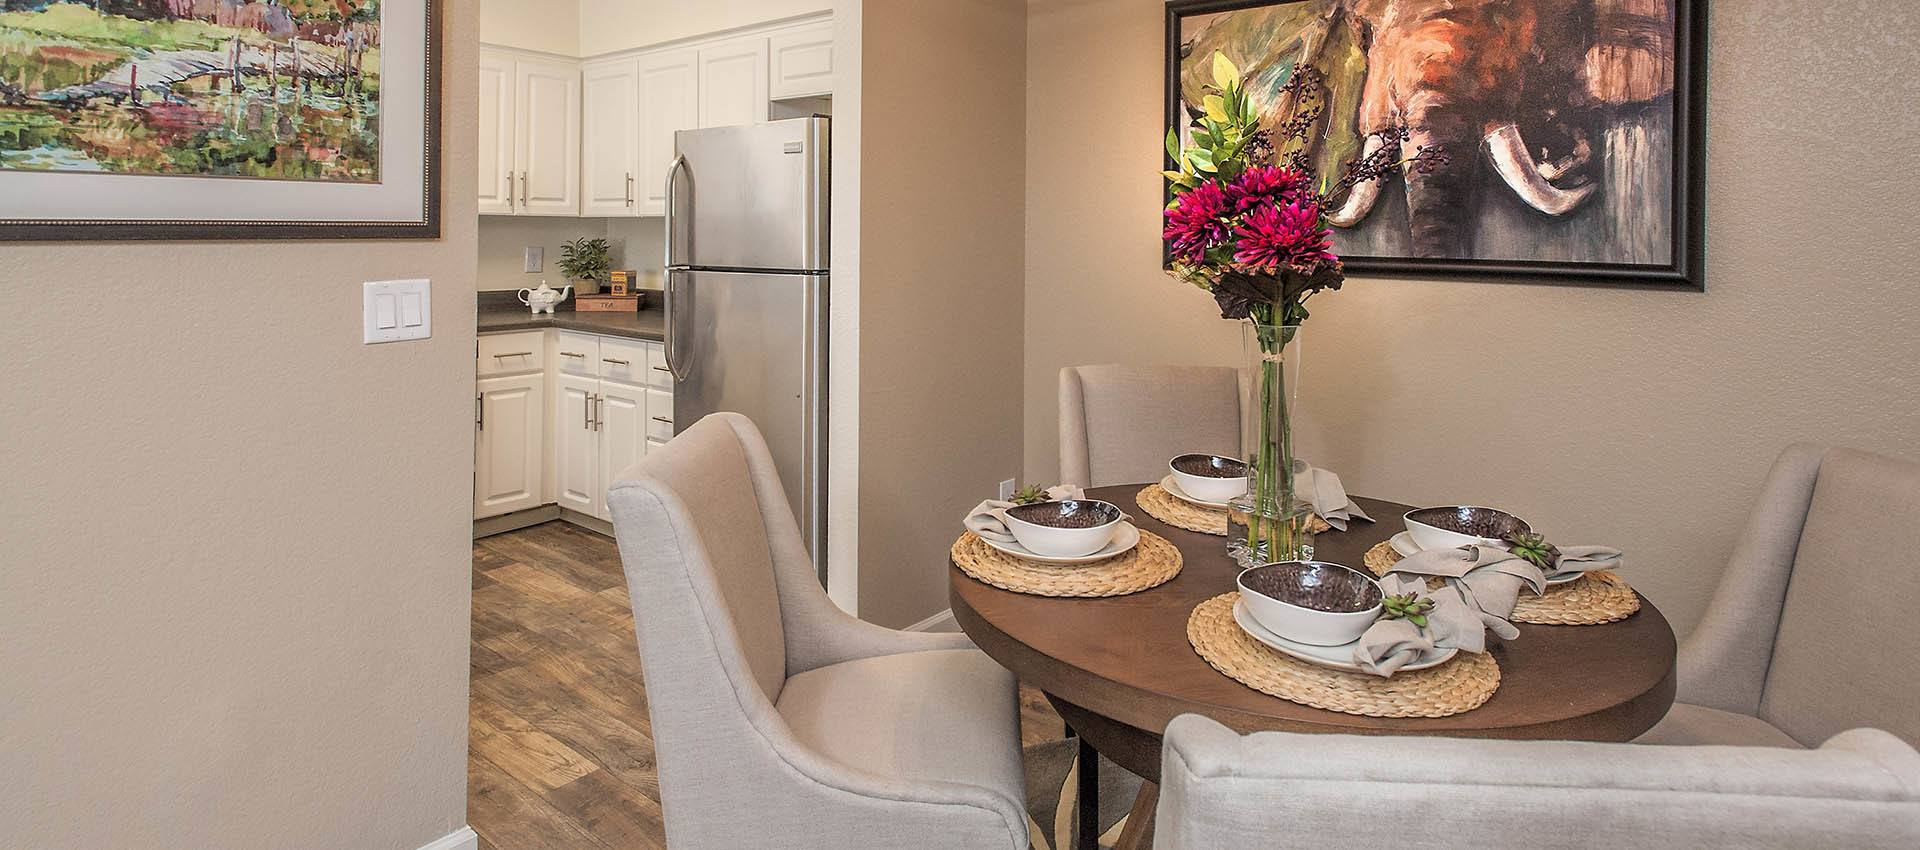 Dining Area With Kitchen View at Hidden Lake Condominium Rentals in Sacramento, California